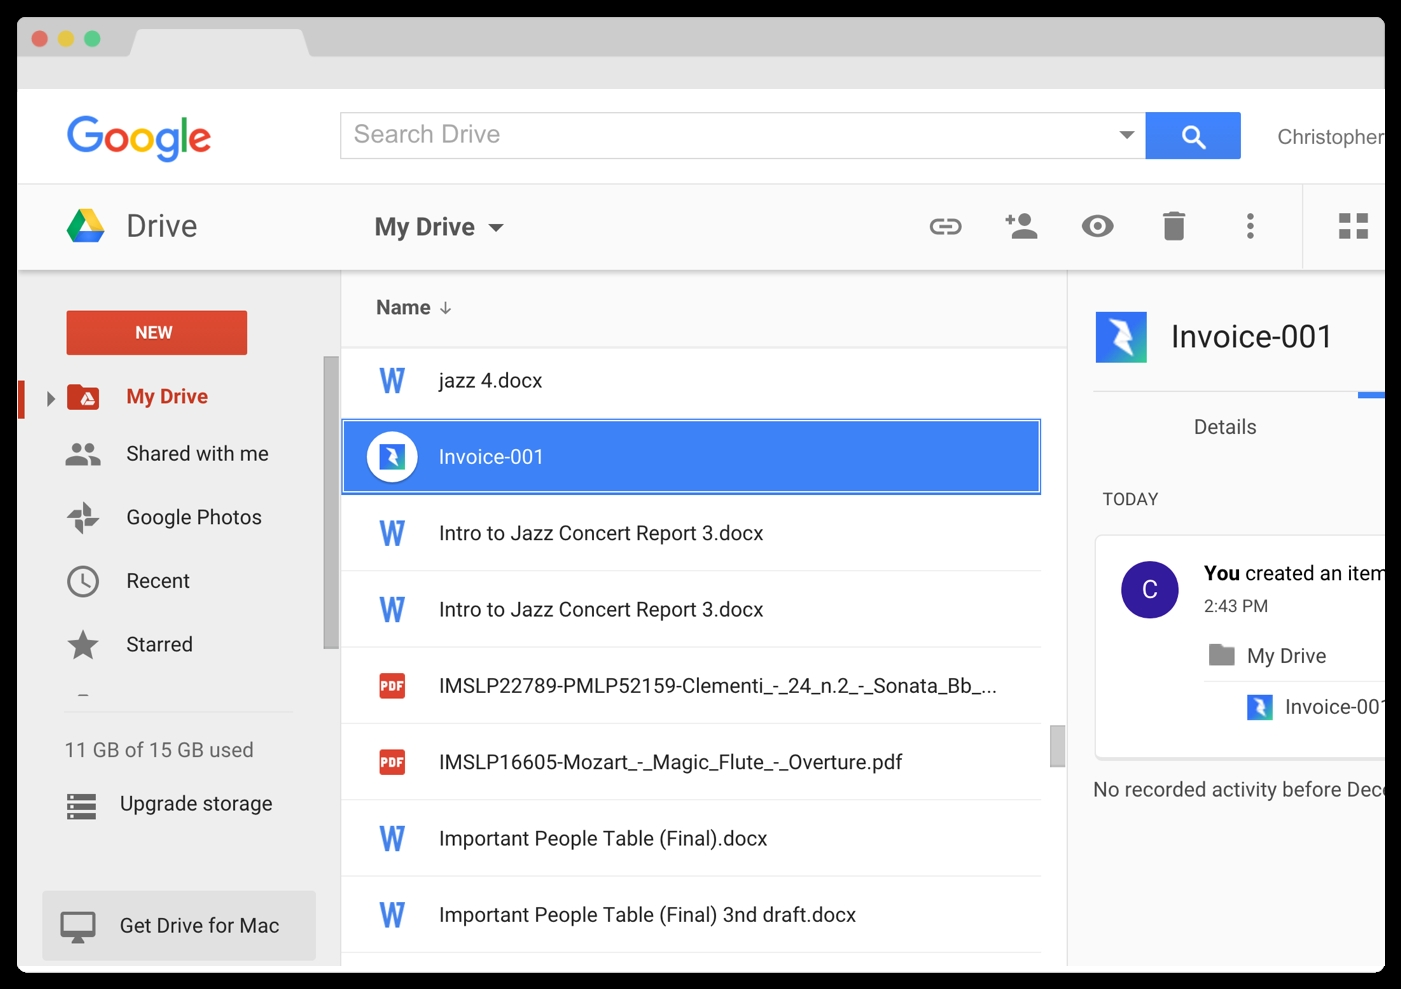 google drive cover letter templates